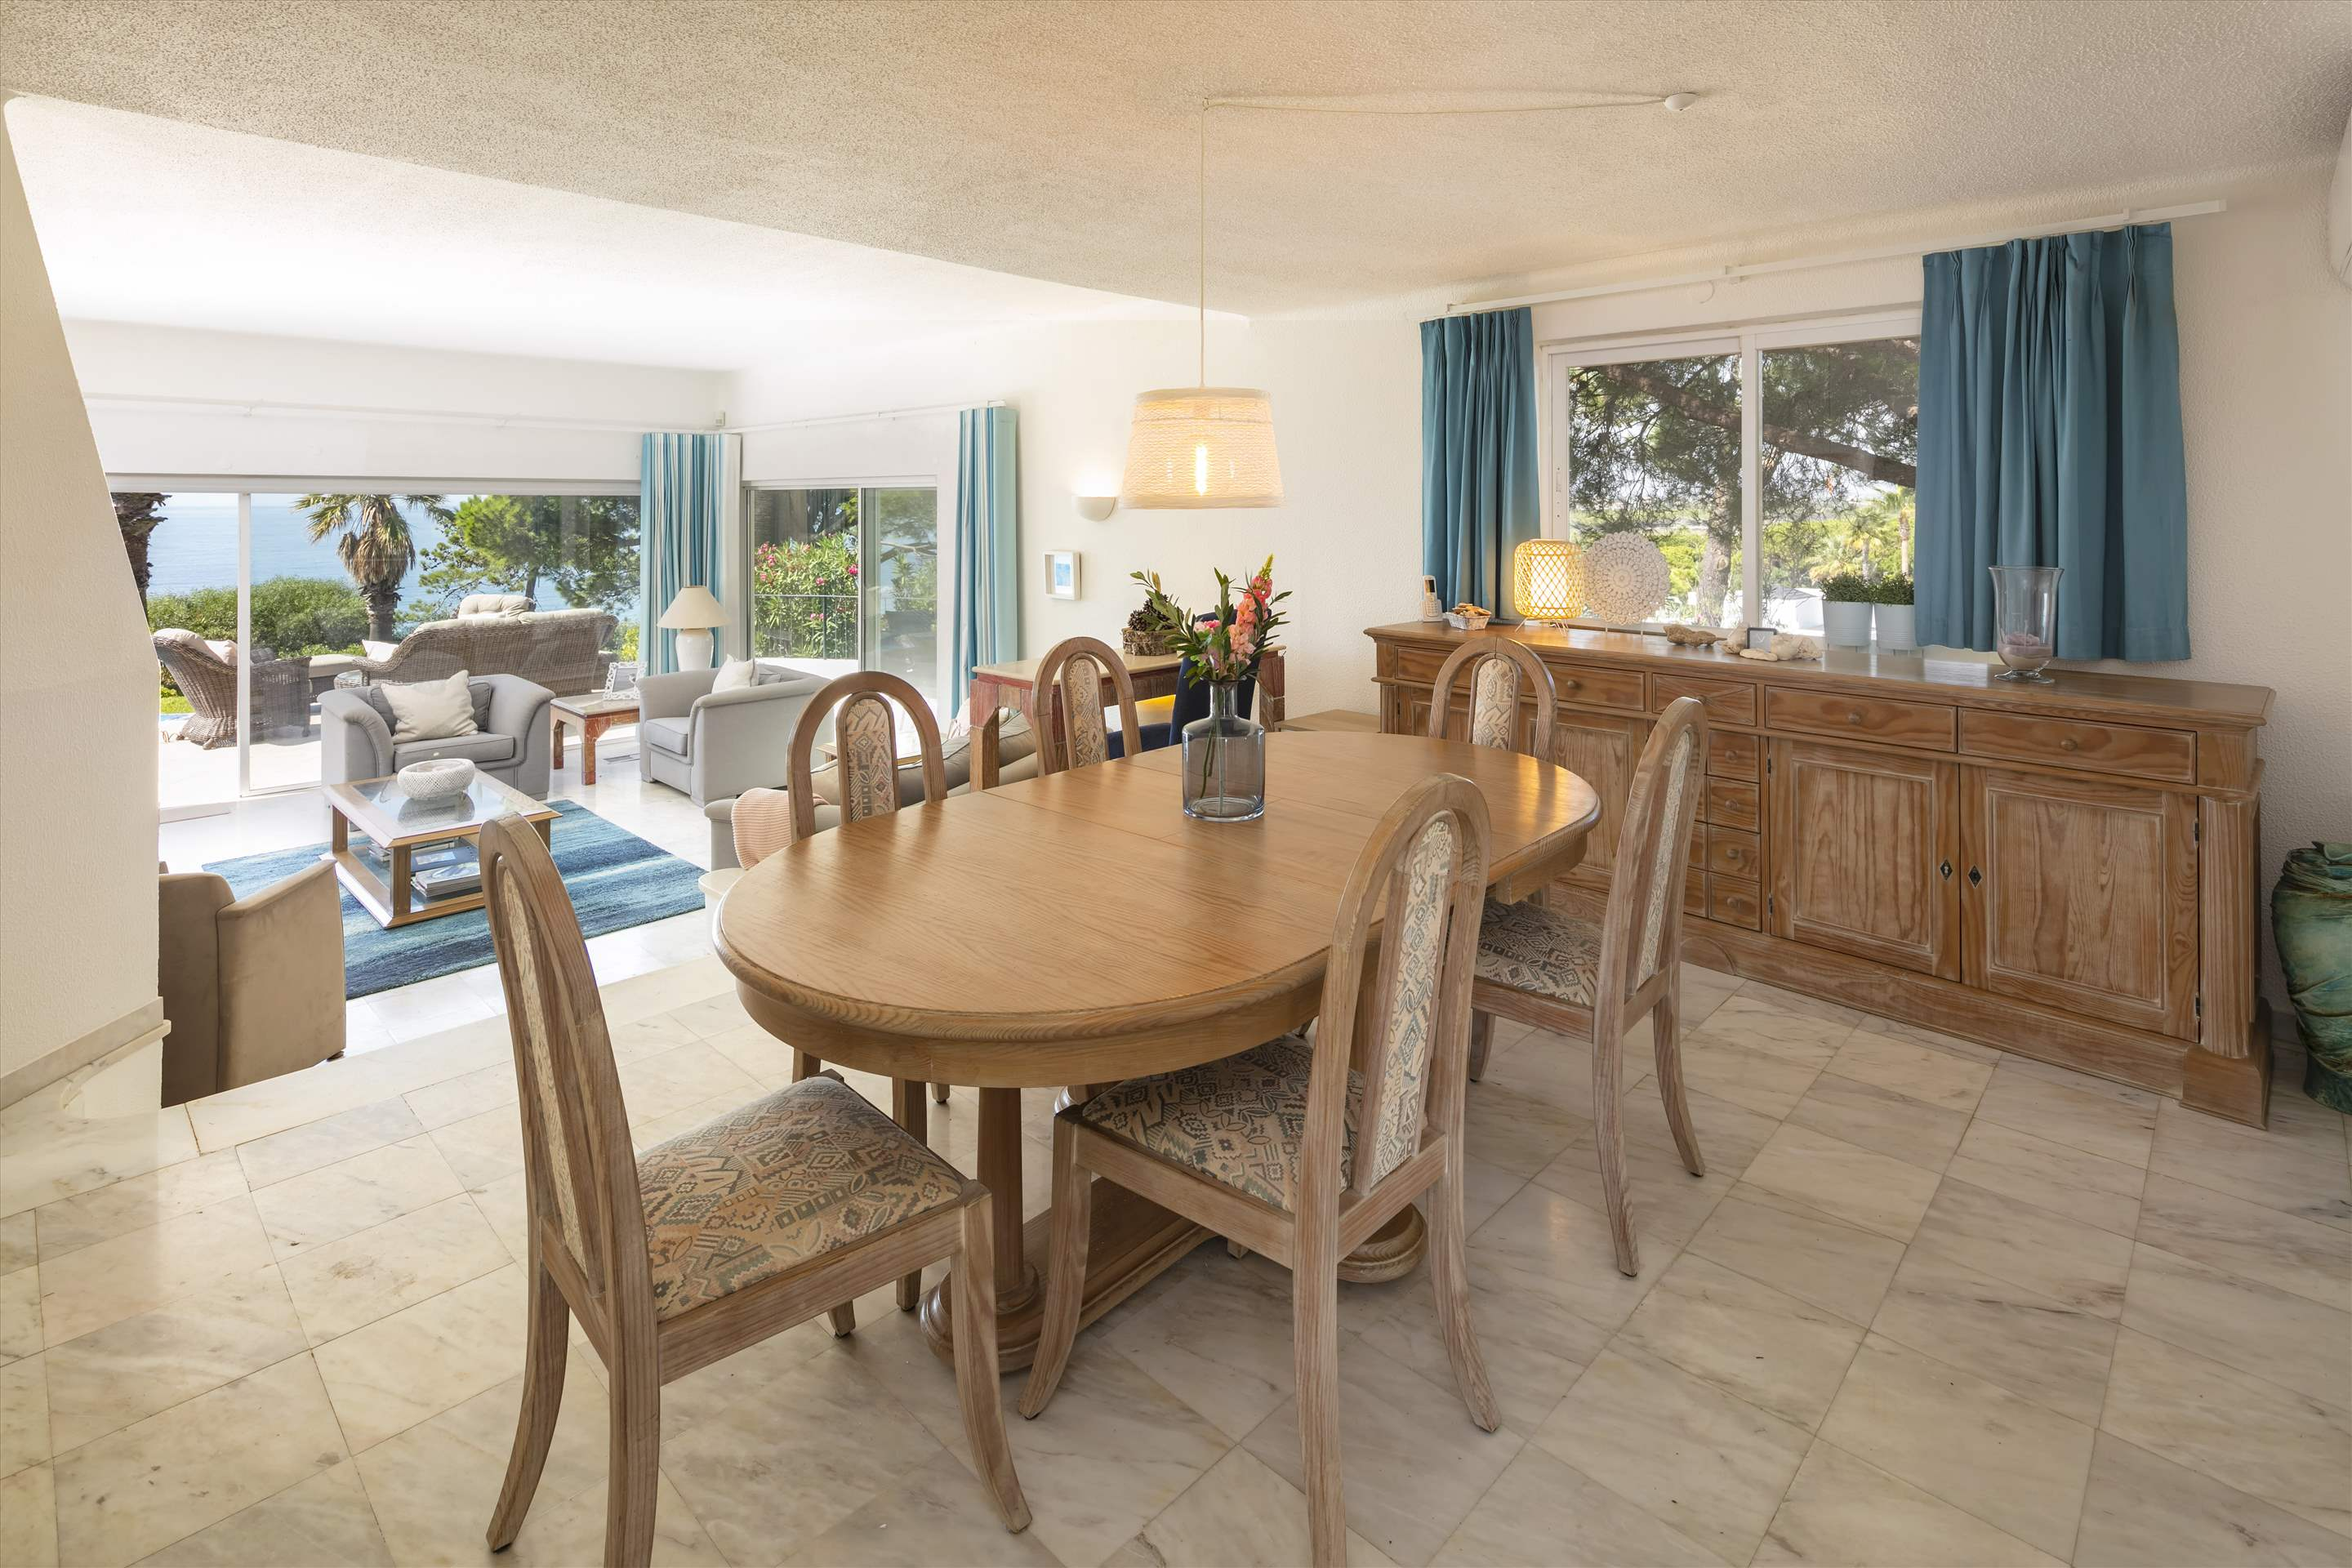 Villa Ocean Beach, 4 bedroom villa in Vale do Lobo, Algarve Photo #8